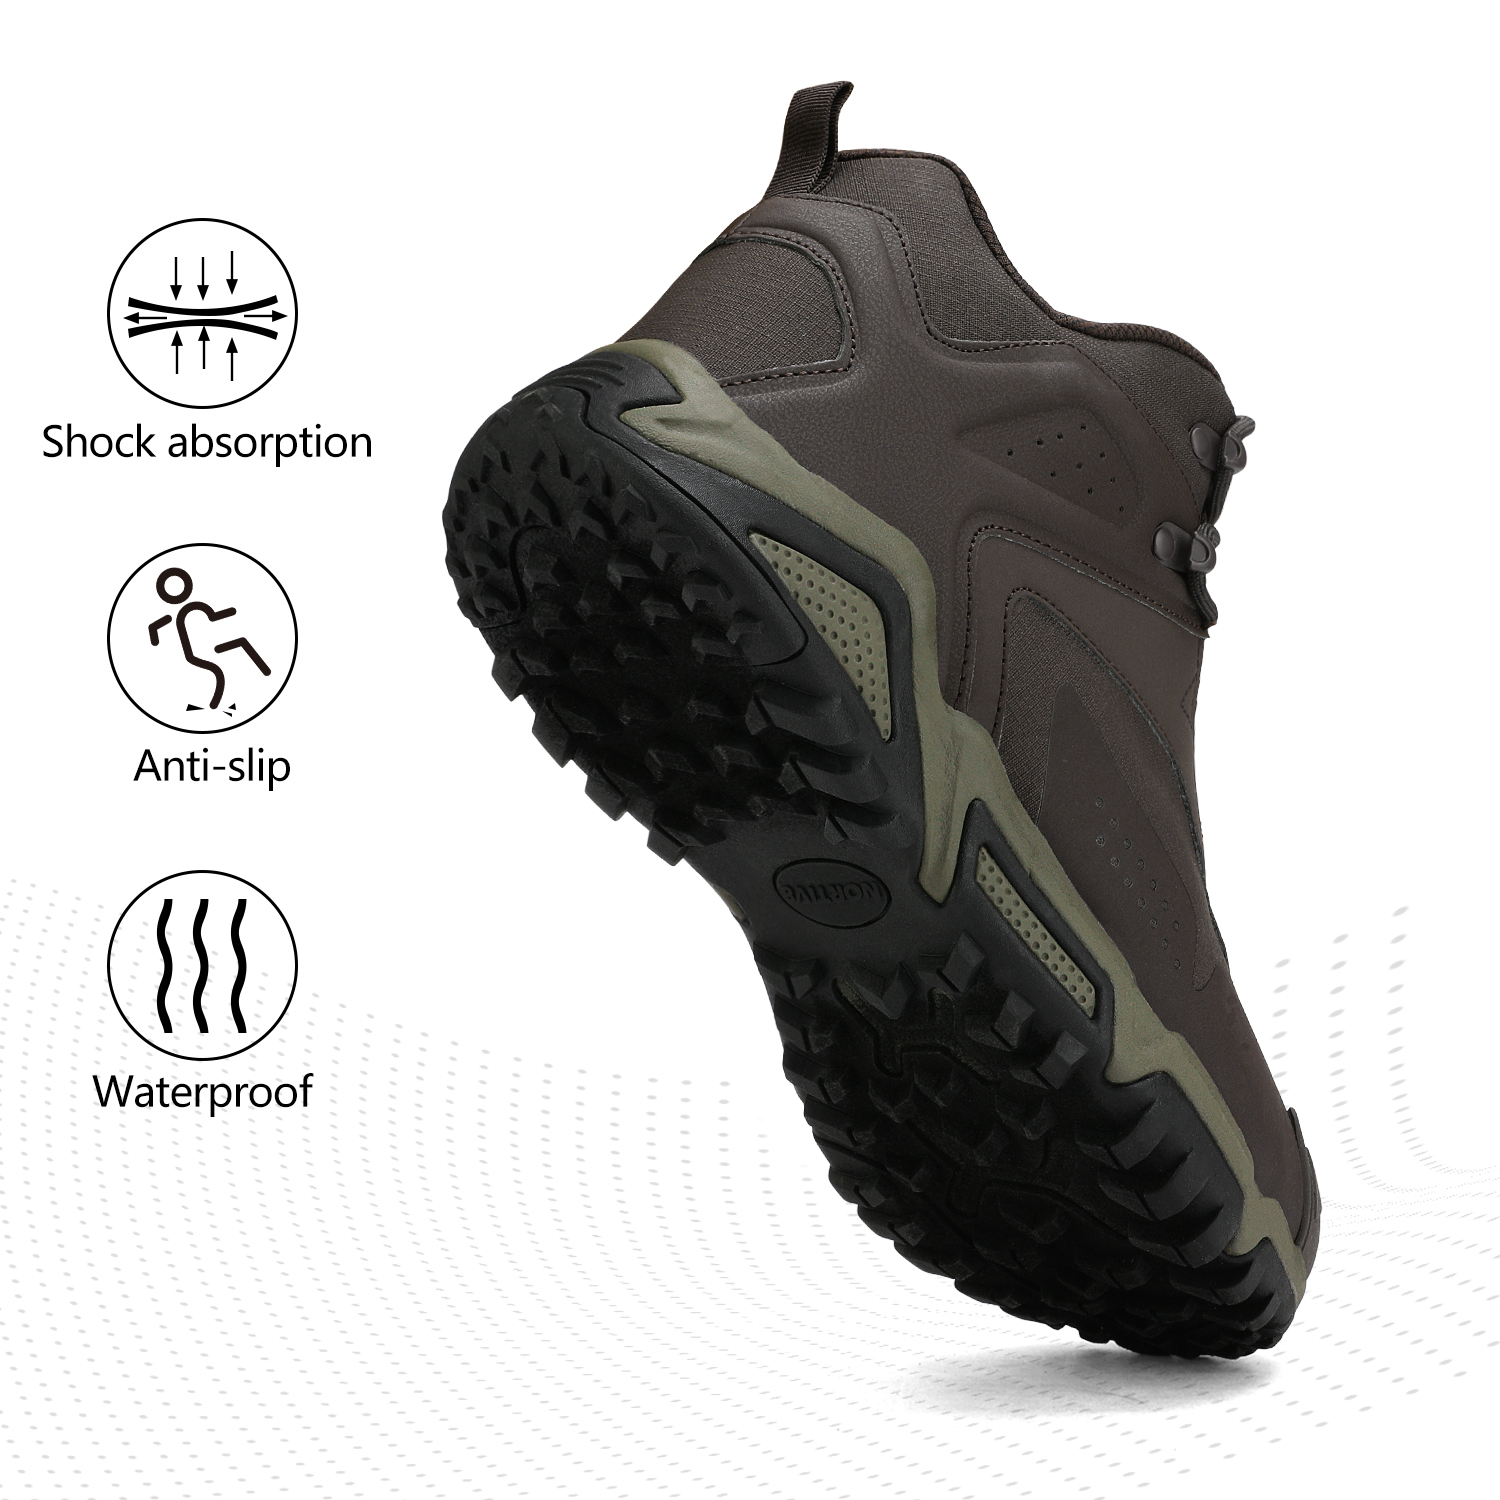 NORTIV-8-Men-039-s-Ankle-Waterproof-Hiking-Boots-Lightweight-Backpacking-Work-Shoes thumbnail 13